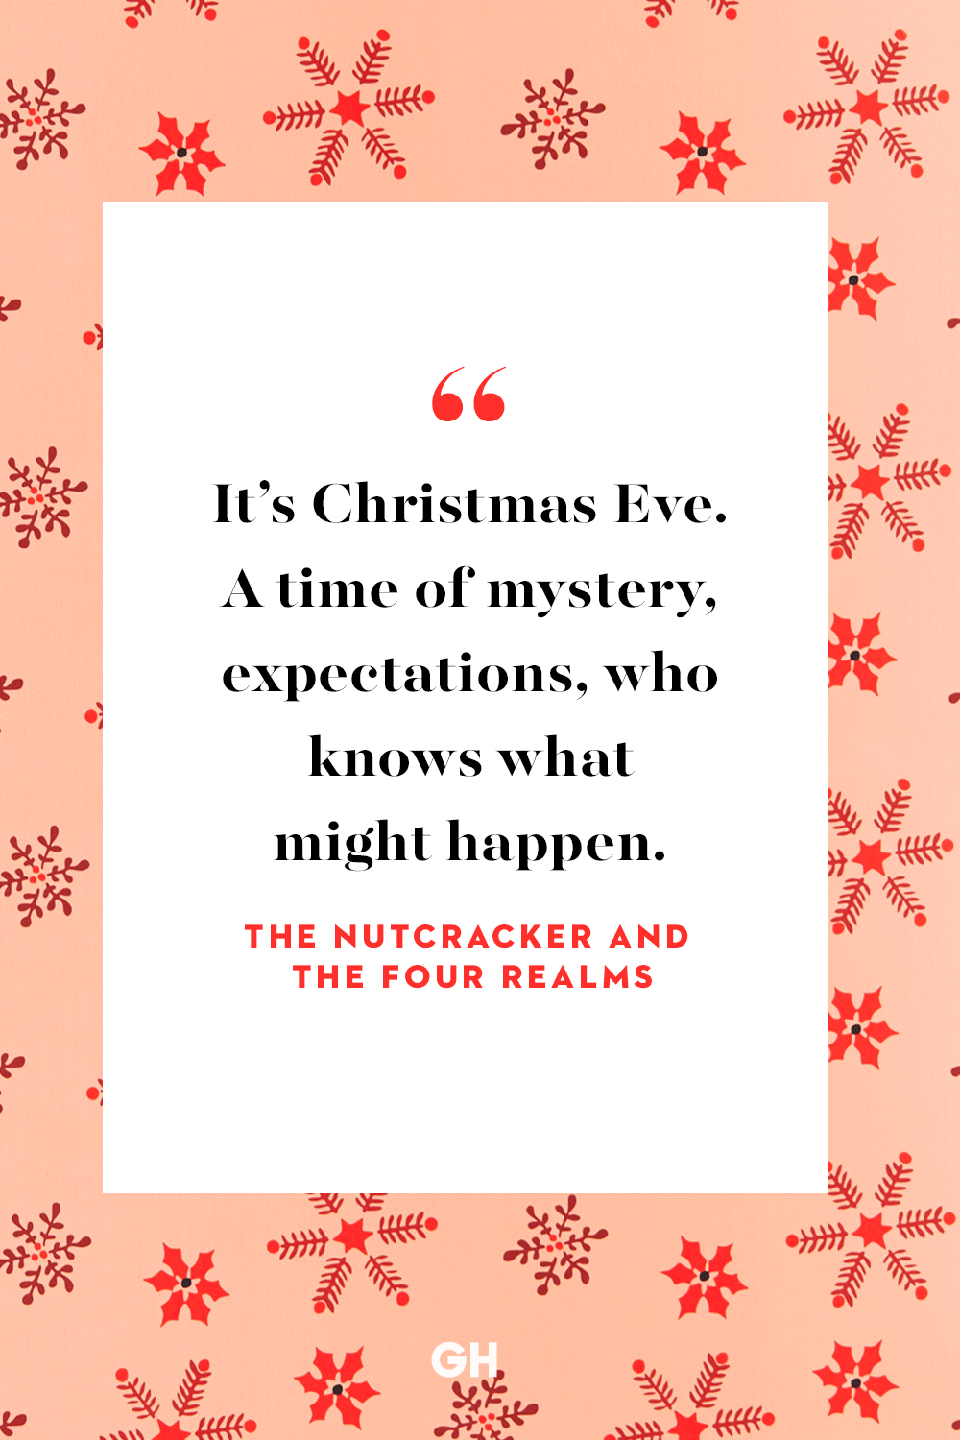 <p>It's Christmas Eve. A time of mystery, expectations, who knows what might happen.</p>